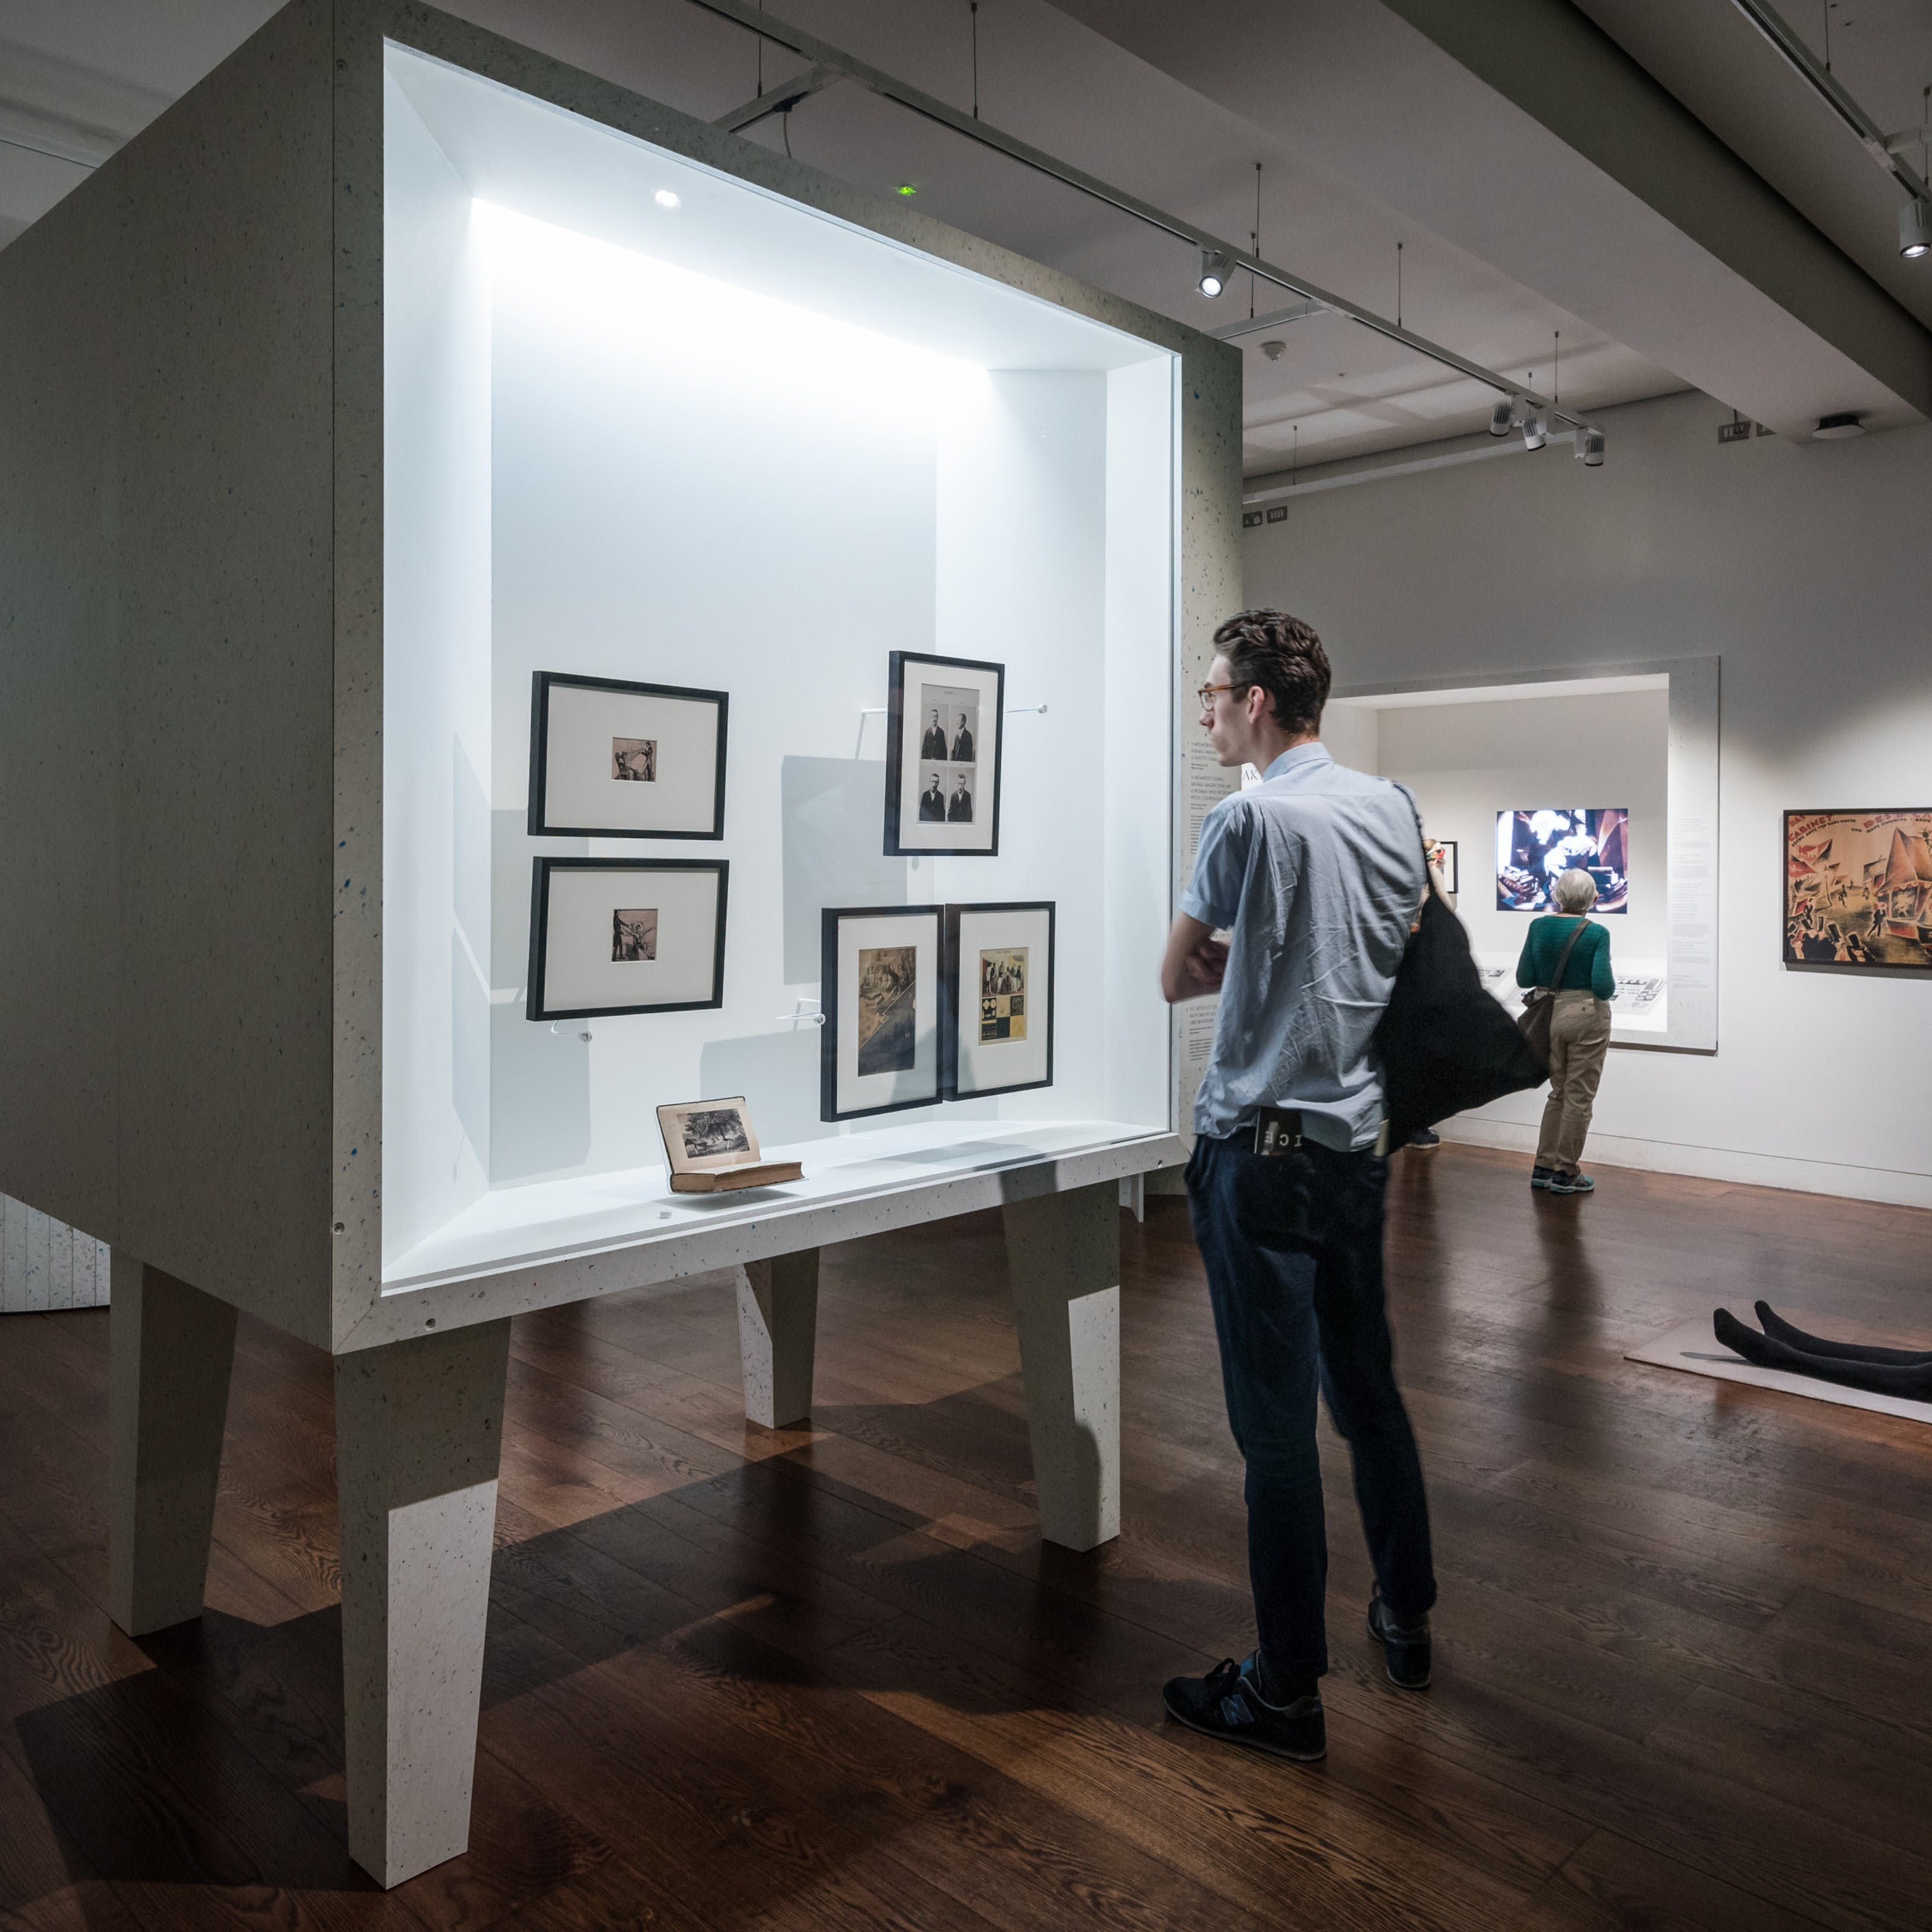 Photograph of visitors exploring the exhibition, States of Mind: Tracing the Edges of Consciousness at Wellcome Collection.